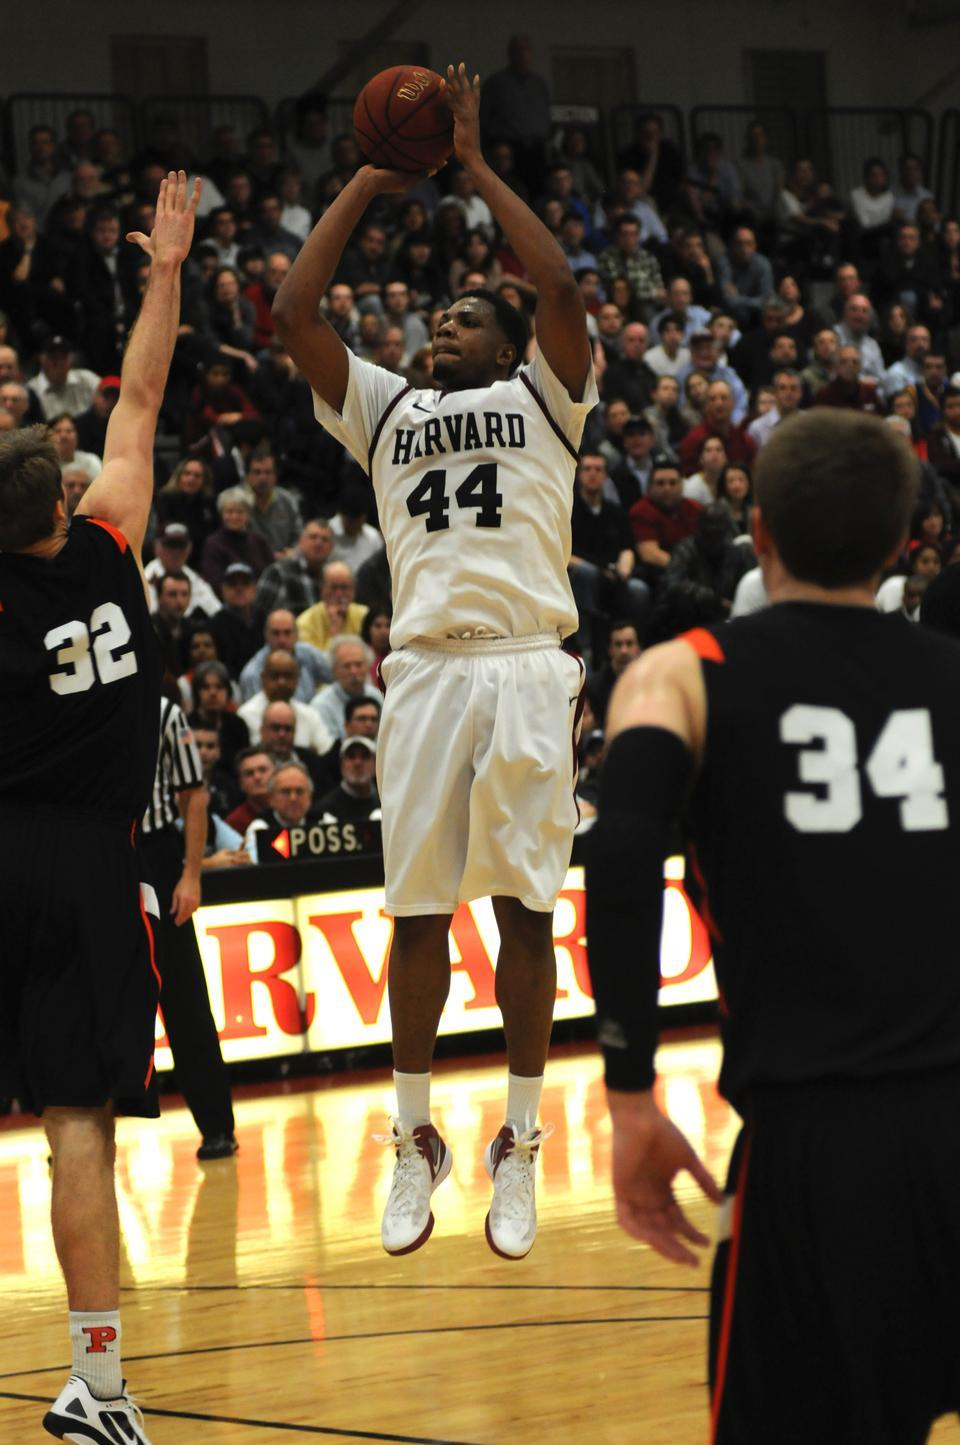 Co-captain Keith Wright, shown here in action against Princeton on Friday night, was chosen to play at this year's Portsmouth Invitational.